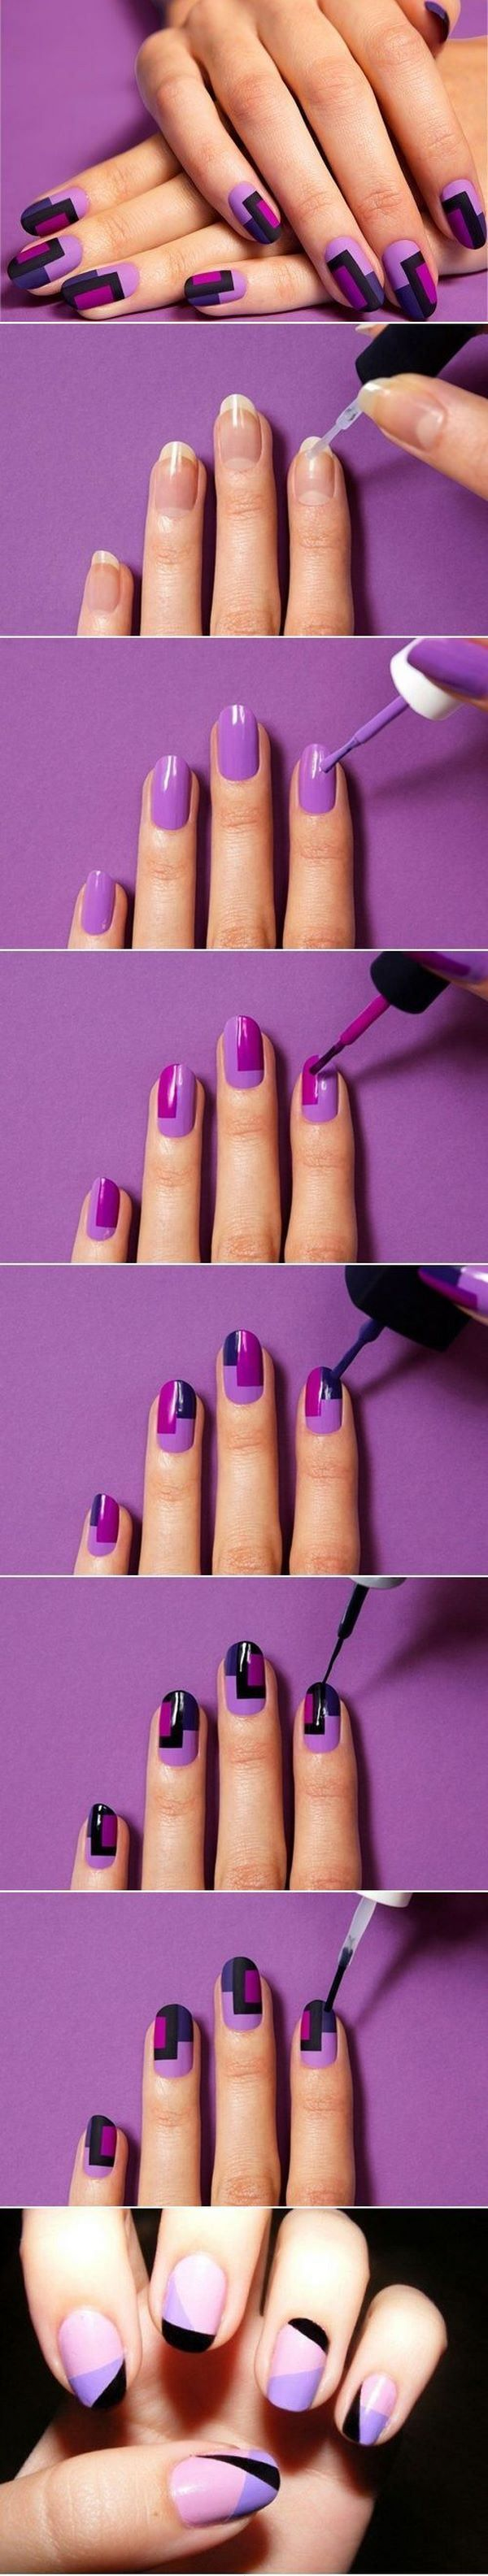 Beautiful nails step by step - Hermosas uñas paso a paso